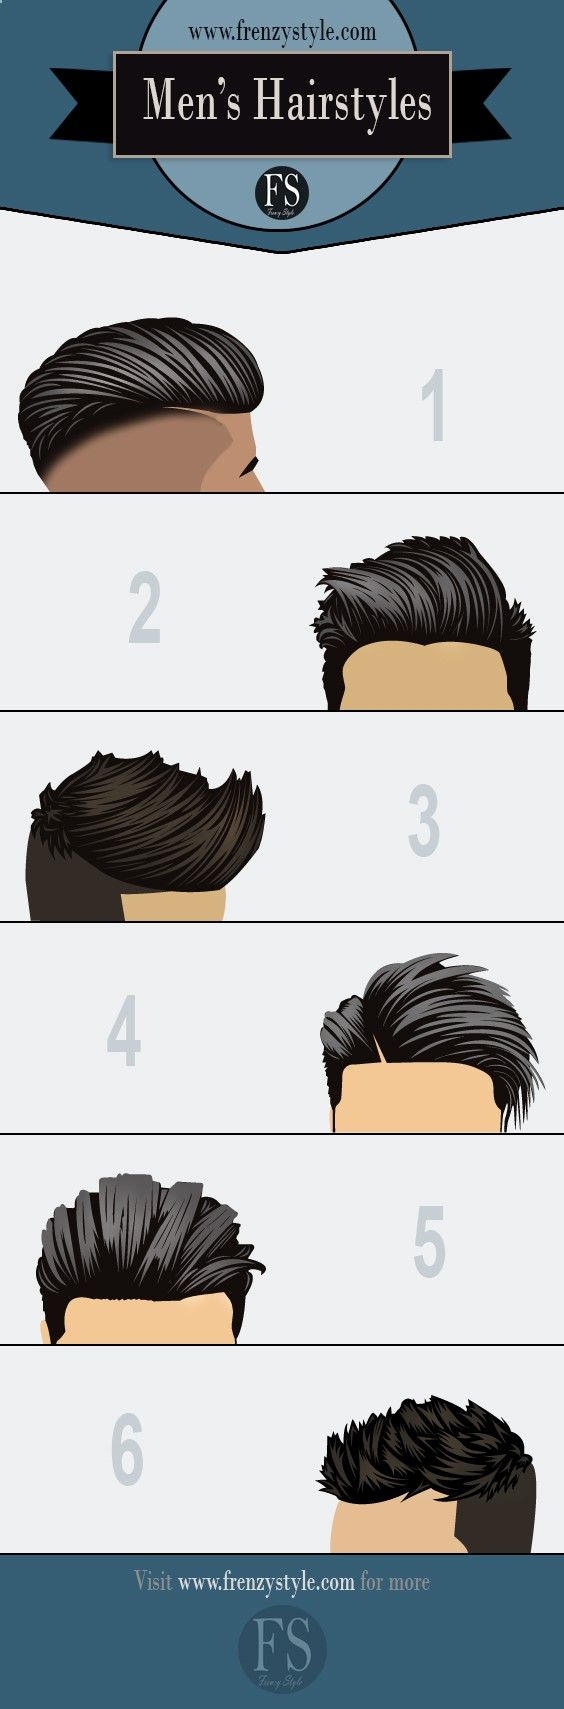 Boy hairstyle long  popular menus hairstyles and haircuts and the products used to